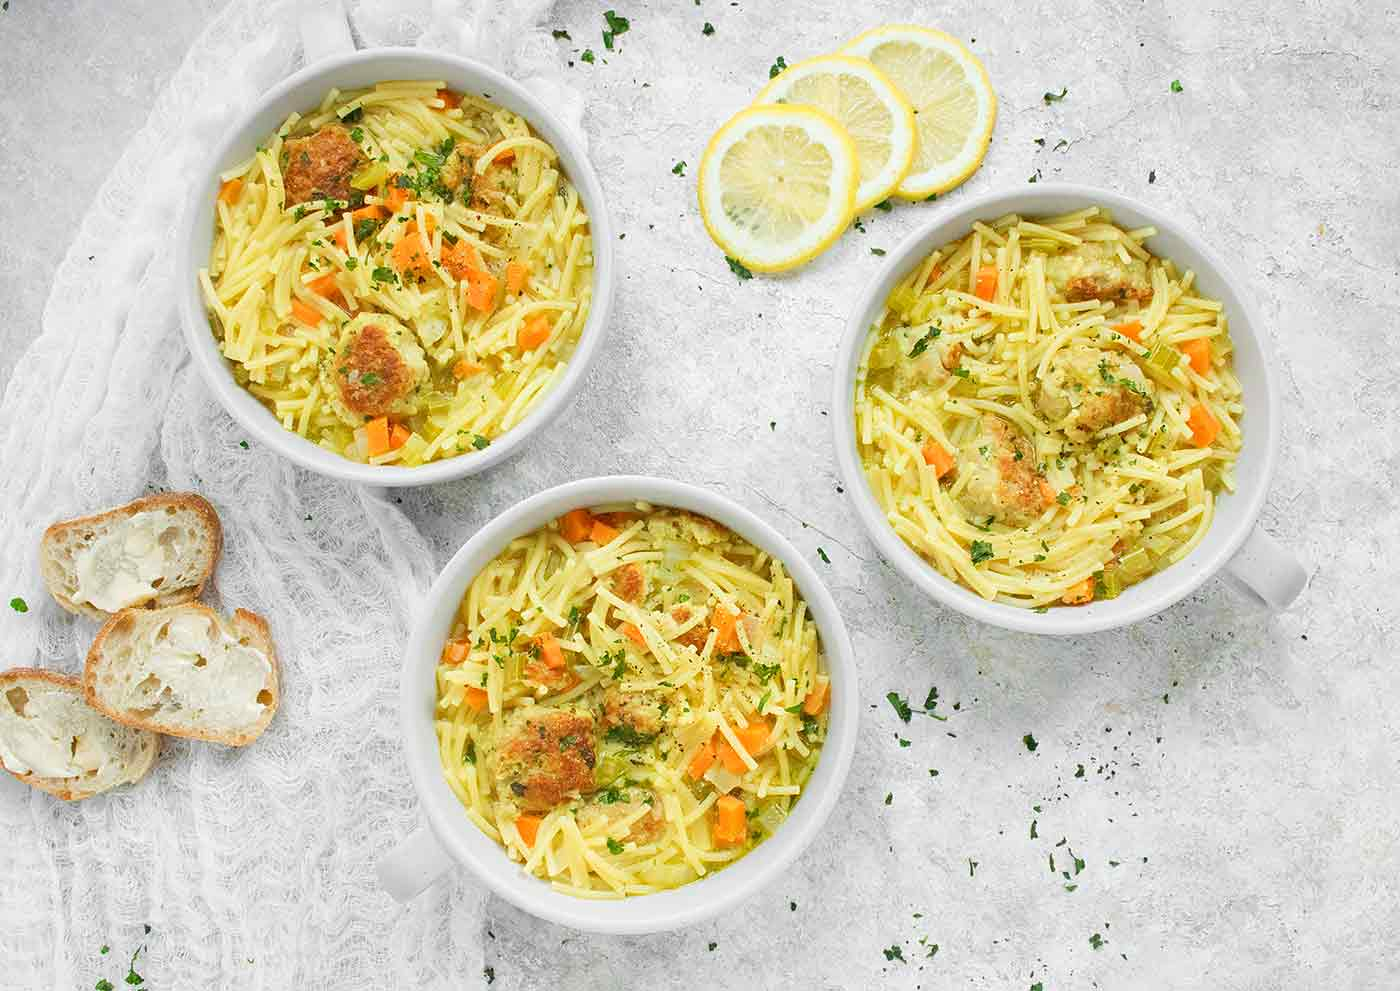 Three bowls of Chicken Meatball Noodle Soup